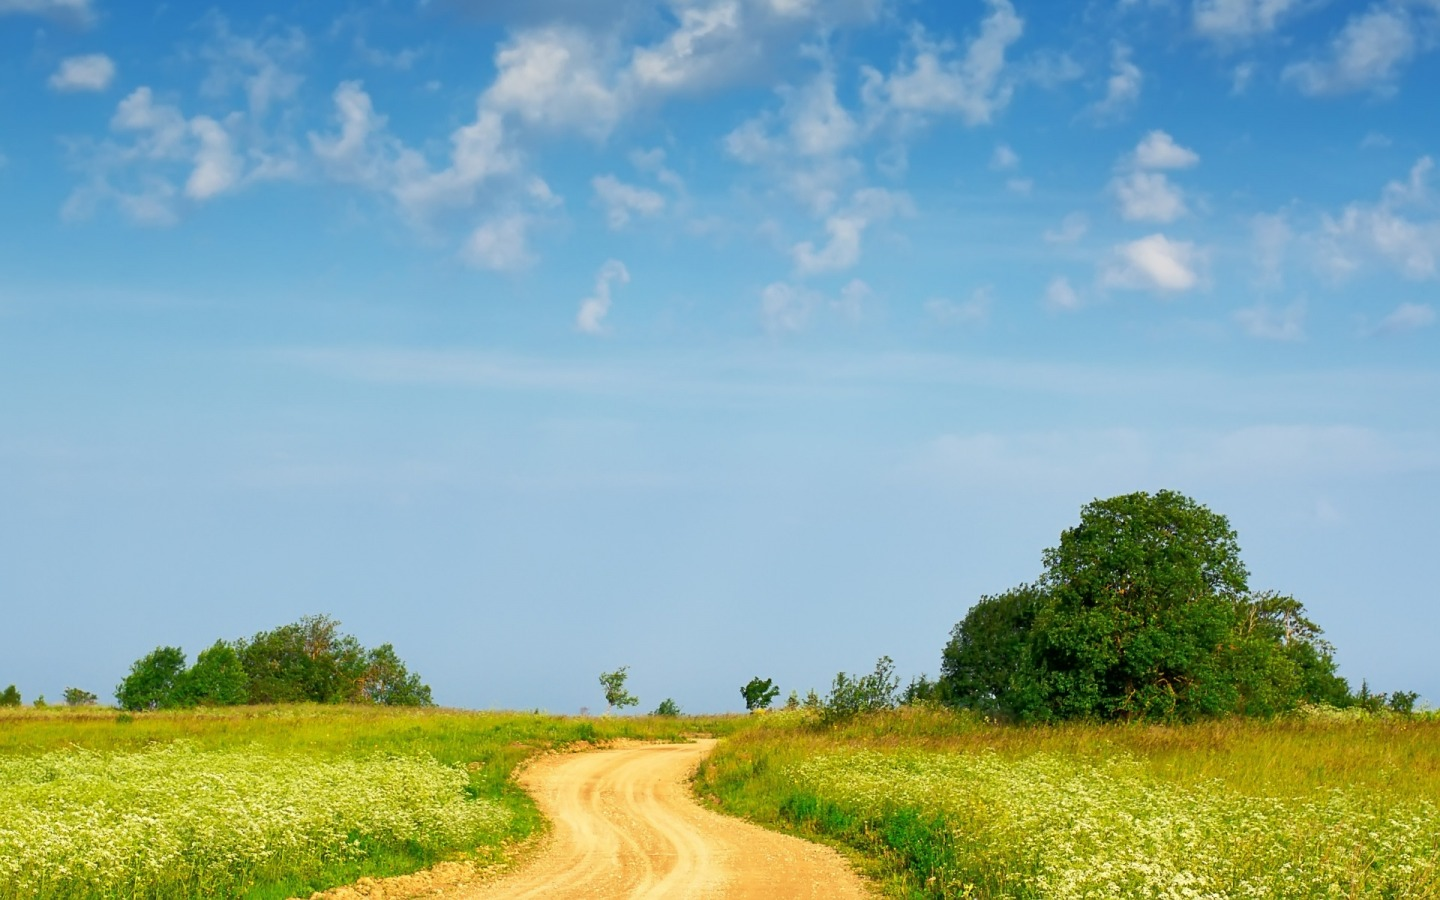 Country path Wallpaper Landscape Nature Wallpapers in jpg format